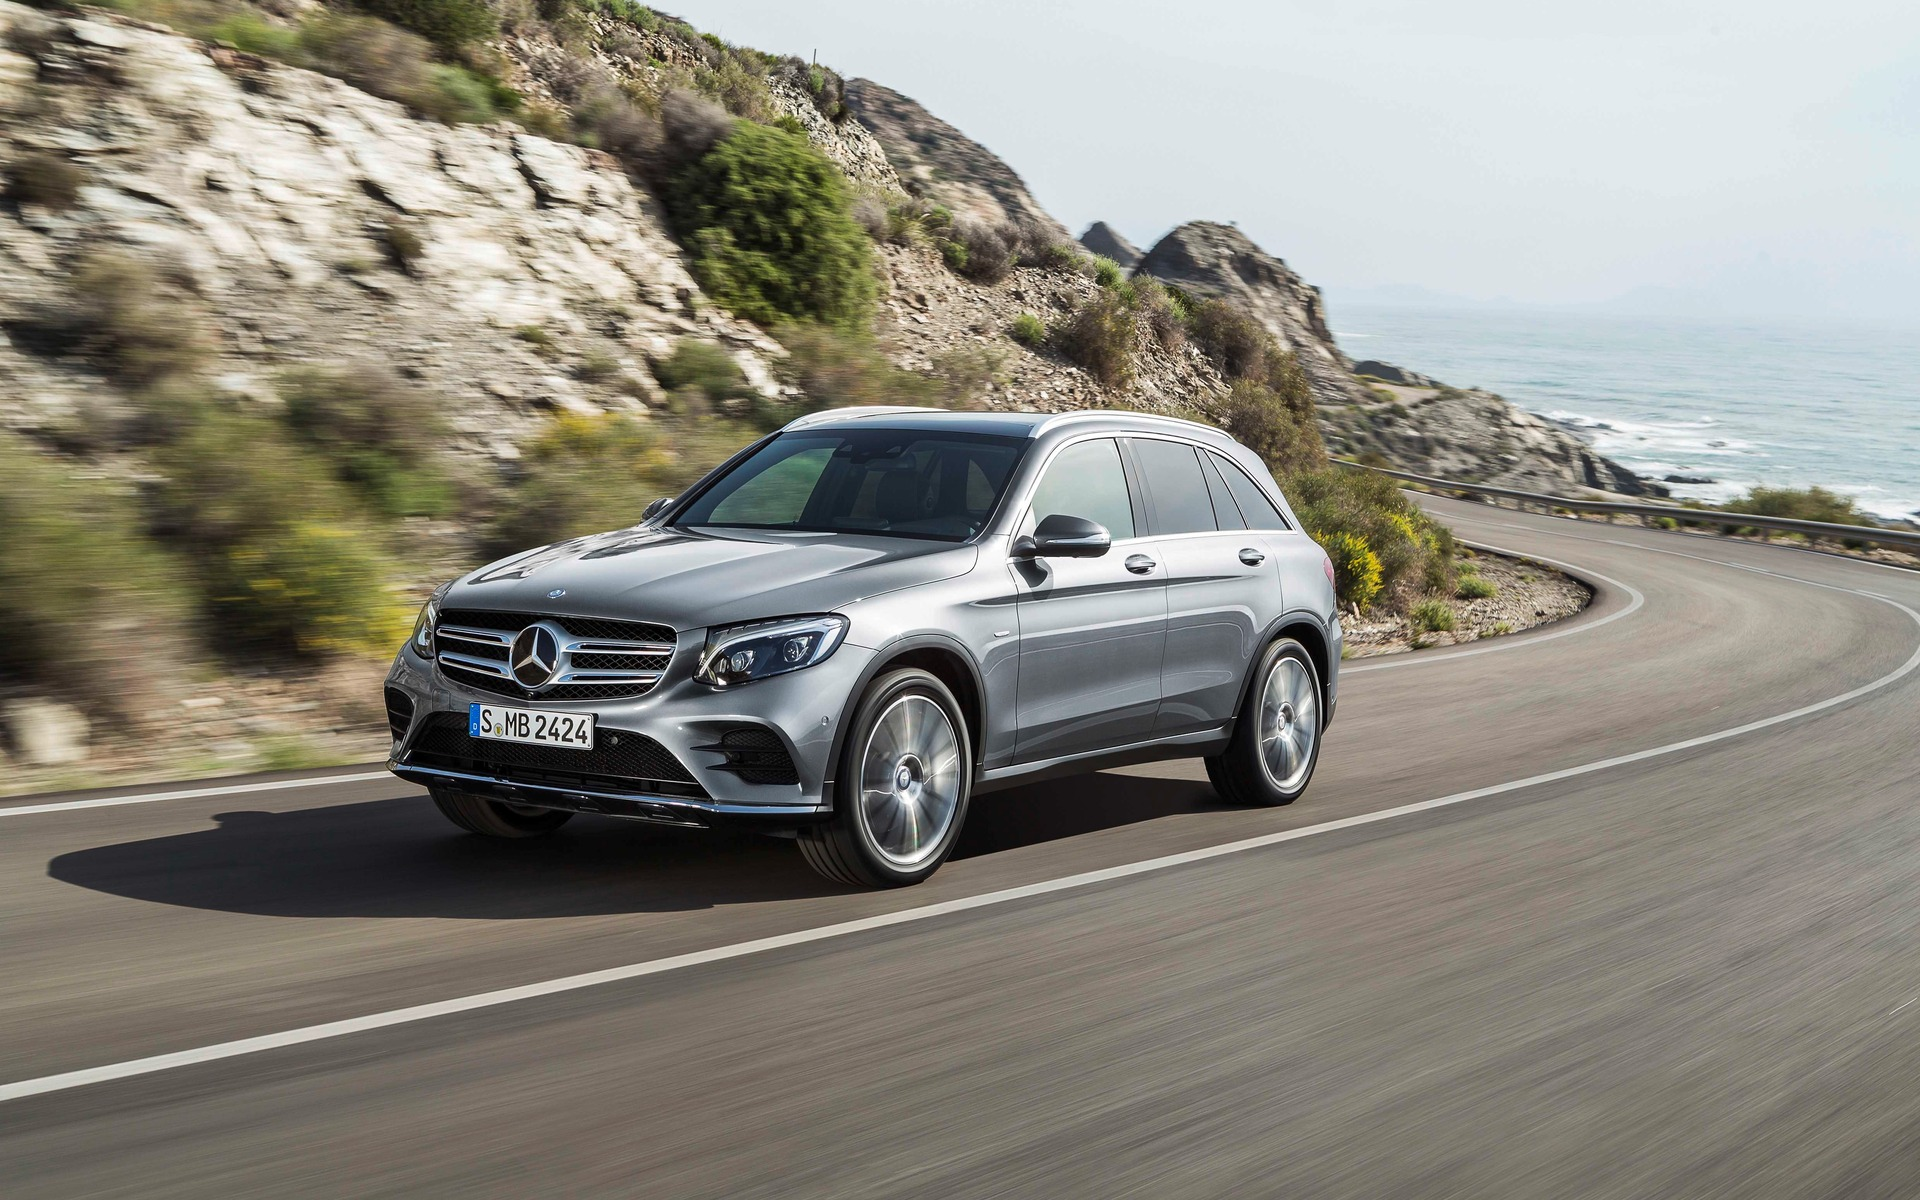 2016 Mercedes Benz GLC We re Driving It This Week The Car Guide